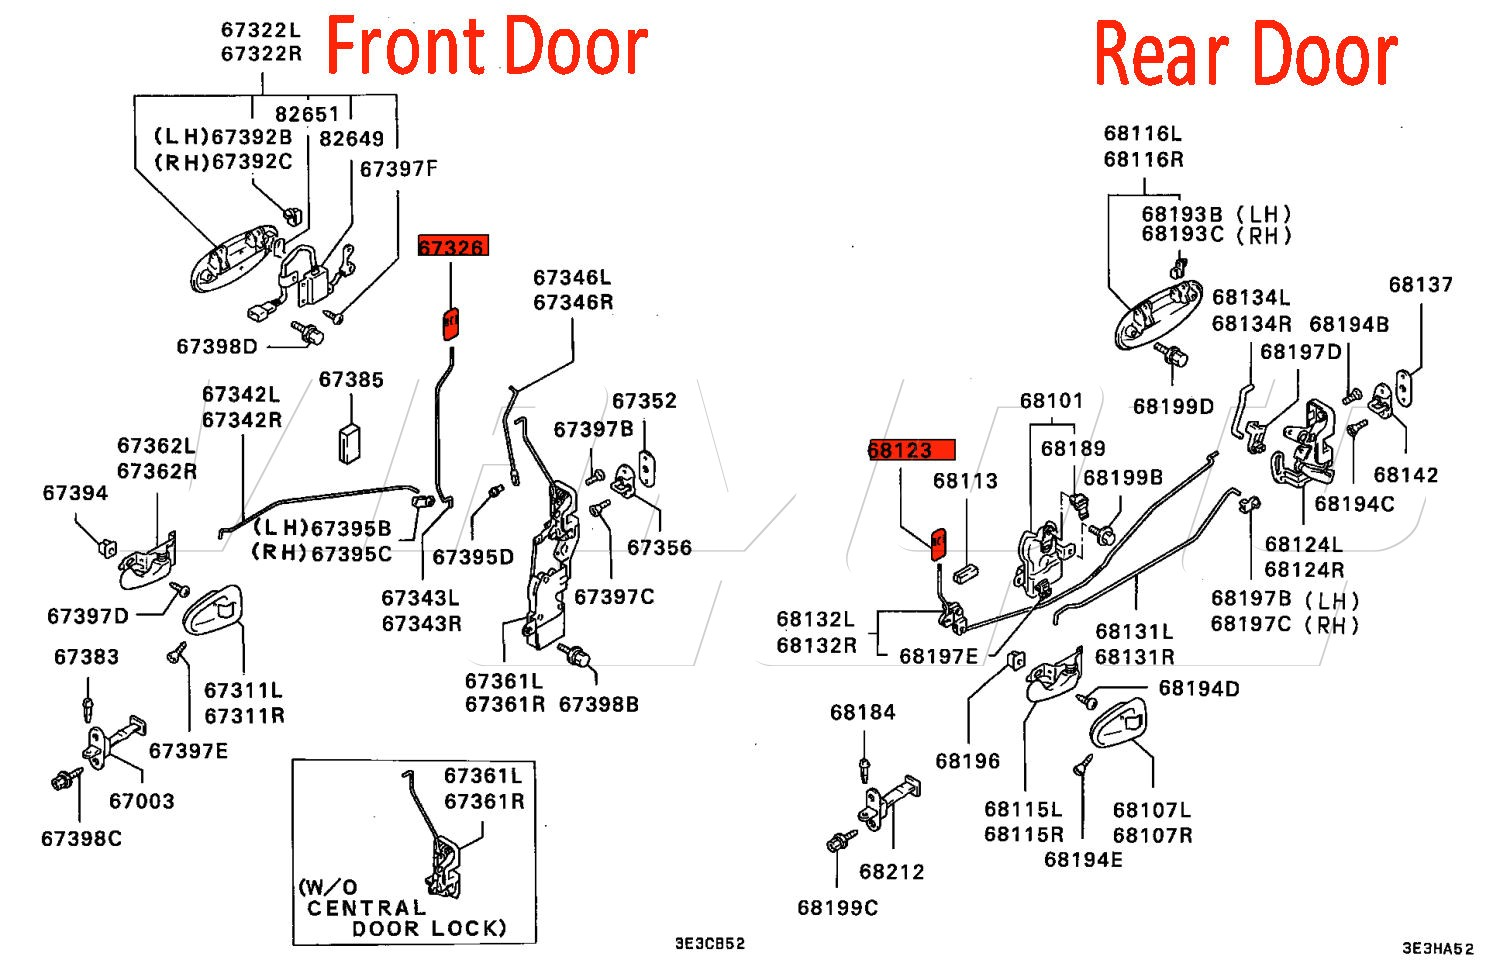 Door Schematic